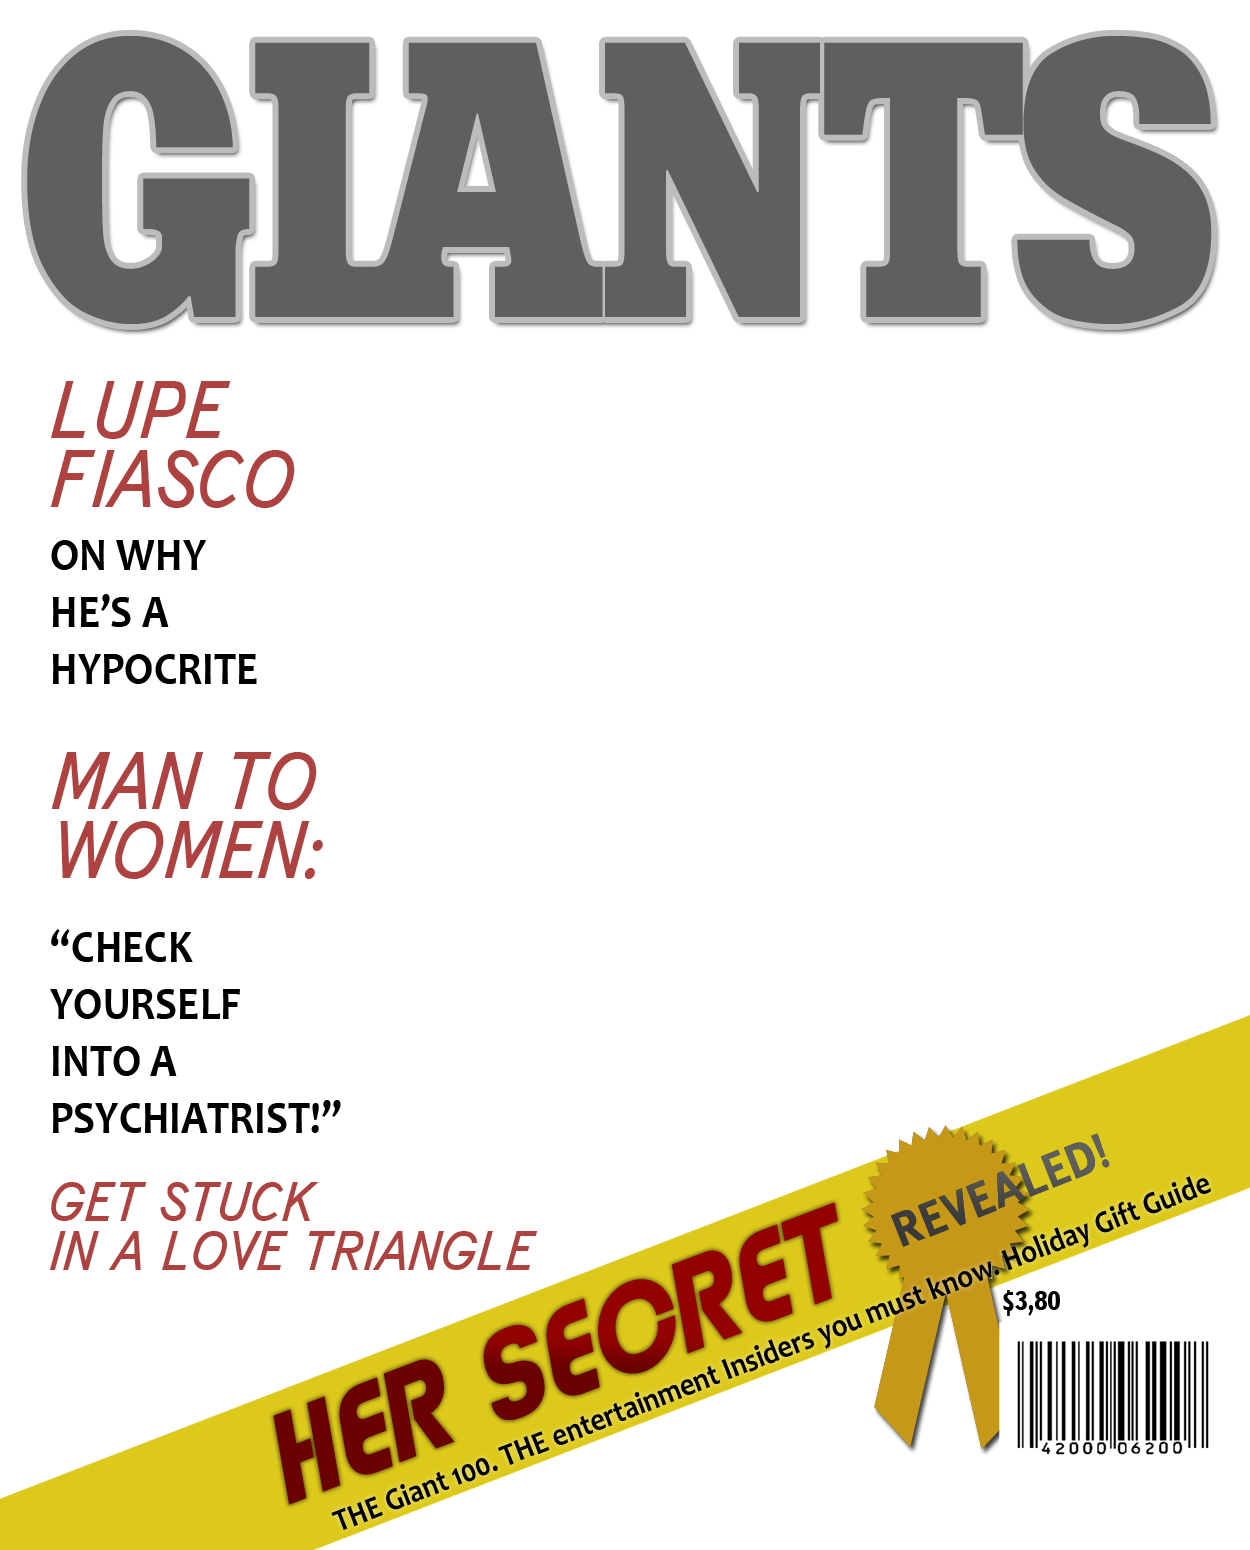 Sports Magazine Png Free Sports Magazine Png Transparent Images 107746 Pngio